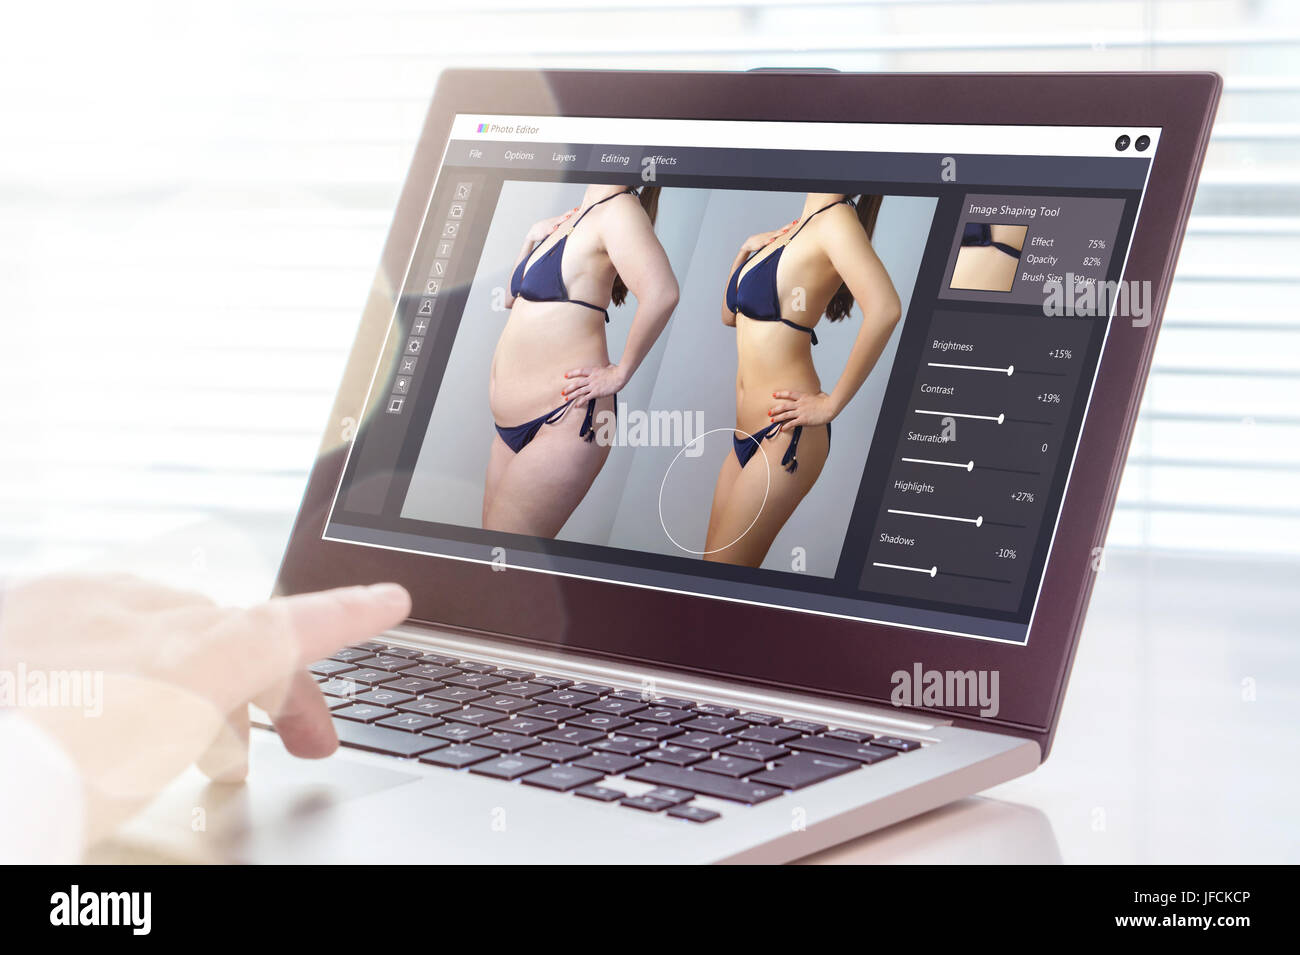 Professional man using laptop to transform chubby woman slim. Heavy photo editing with computer software. Standard - Stock Image